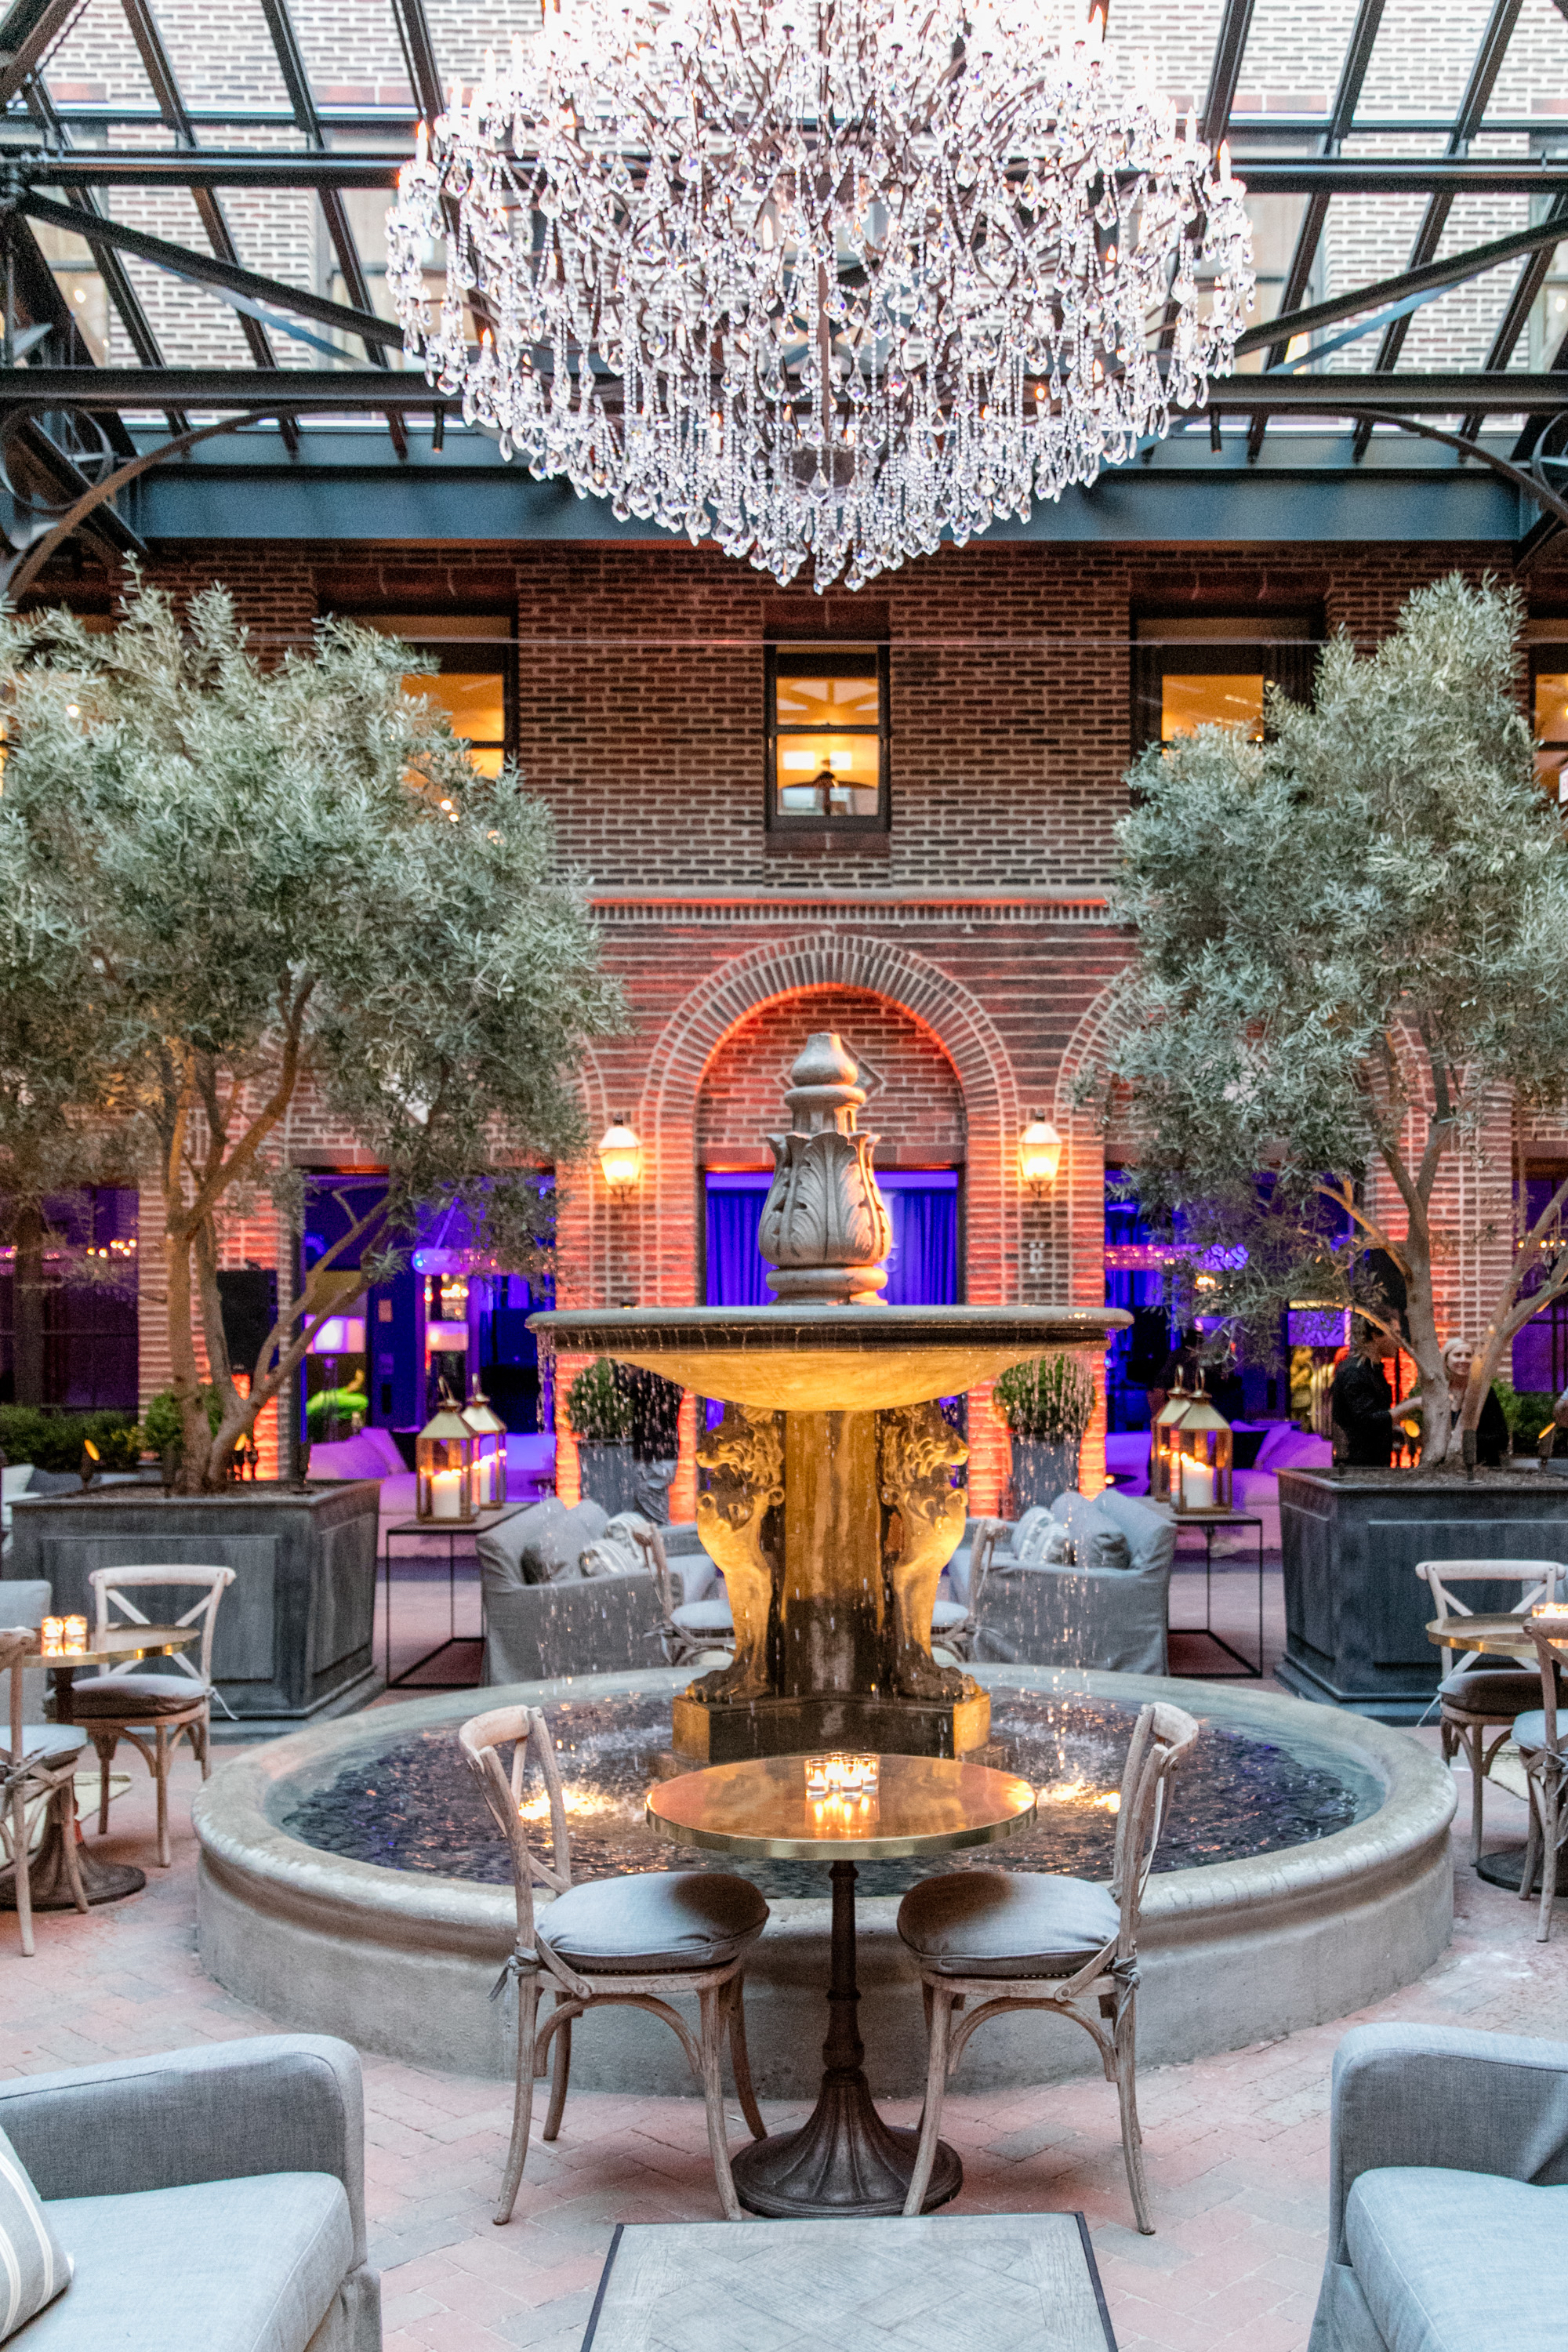 What headlines could Brendan Sodikoff create in 2016 after opening a cafe in a Restoration Hardware in 2015?